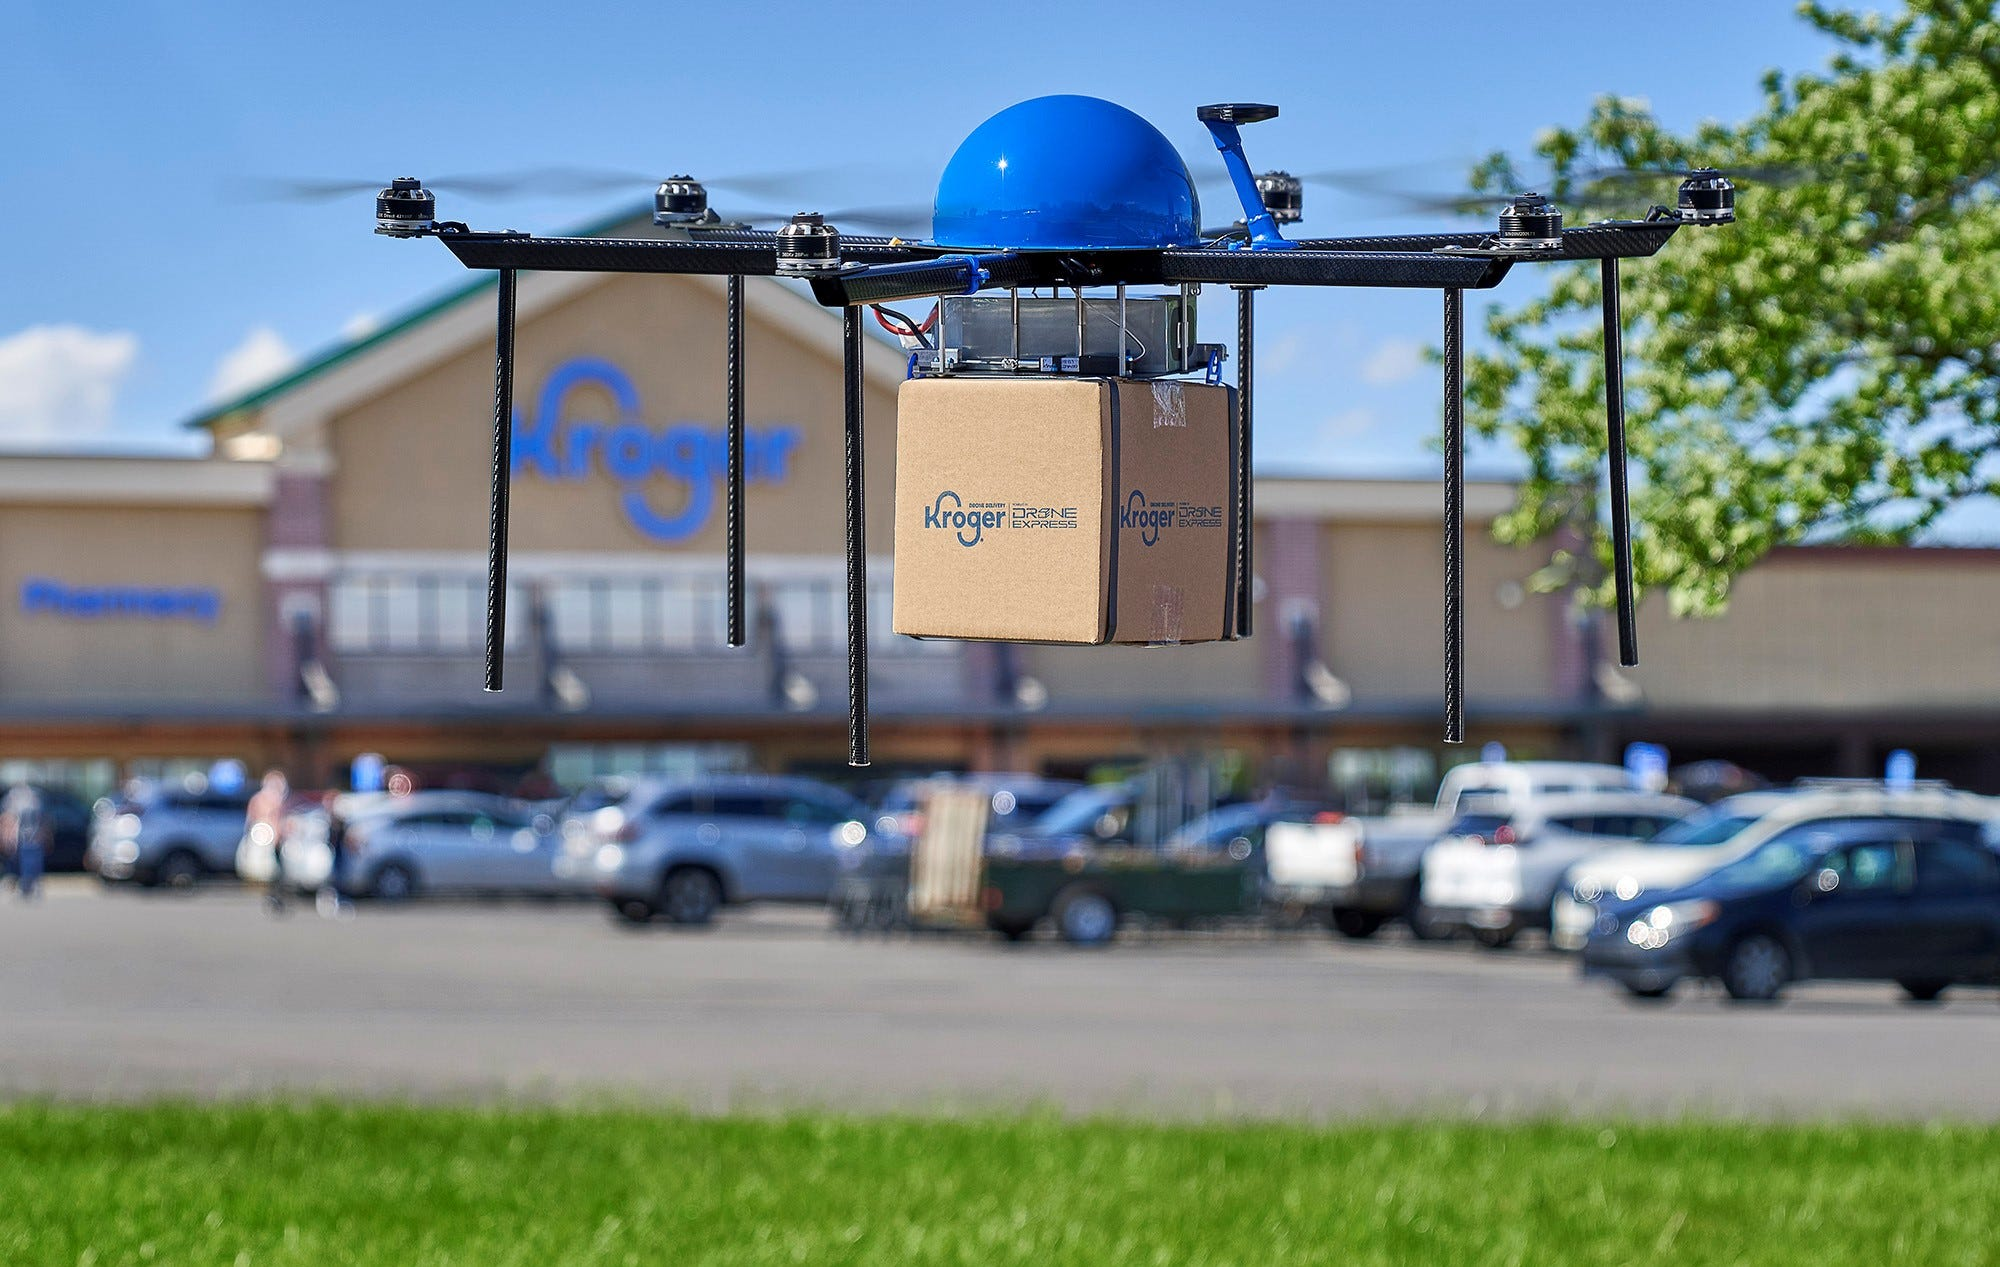 Kroger begins testing home grocery delivery with drones